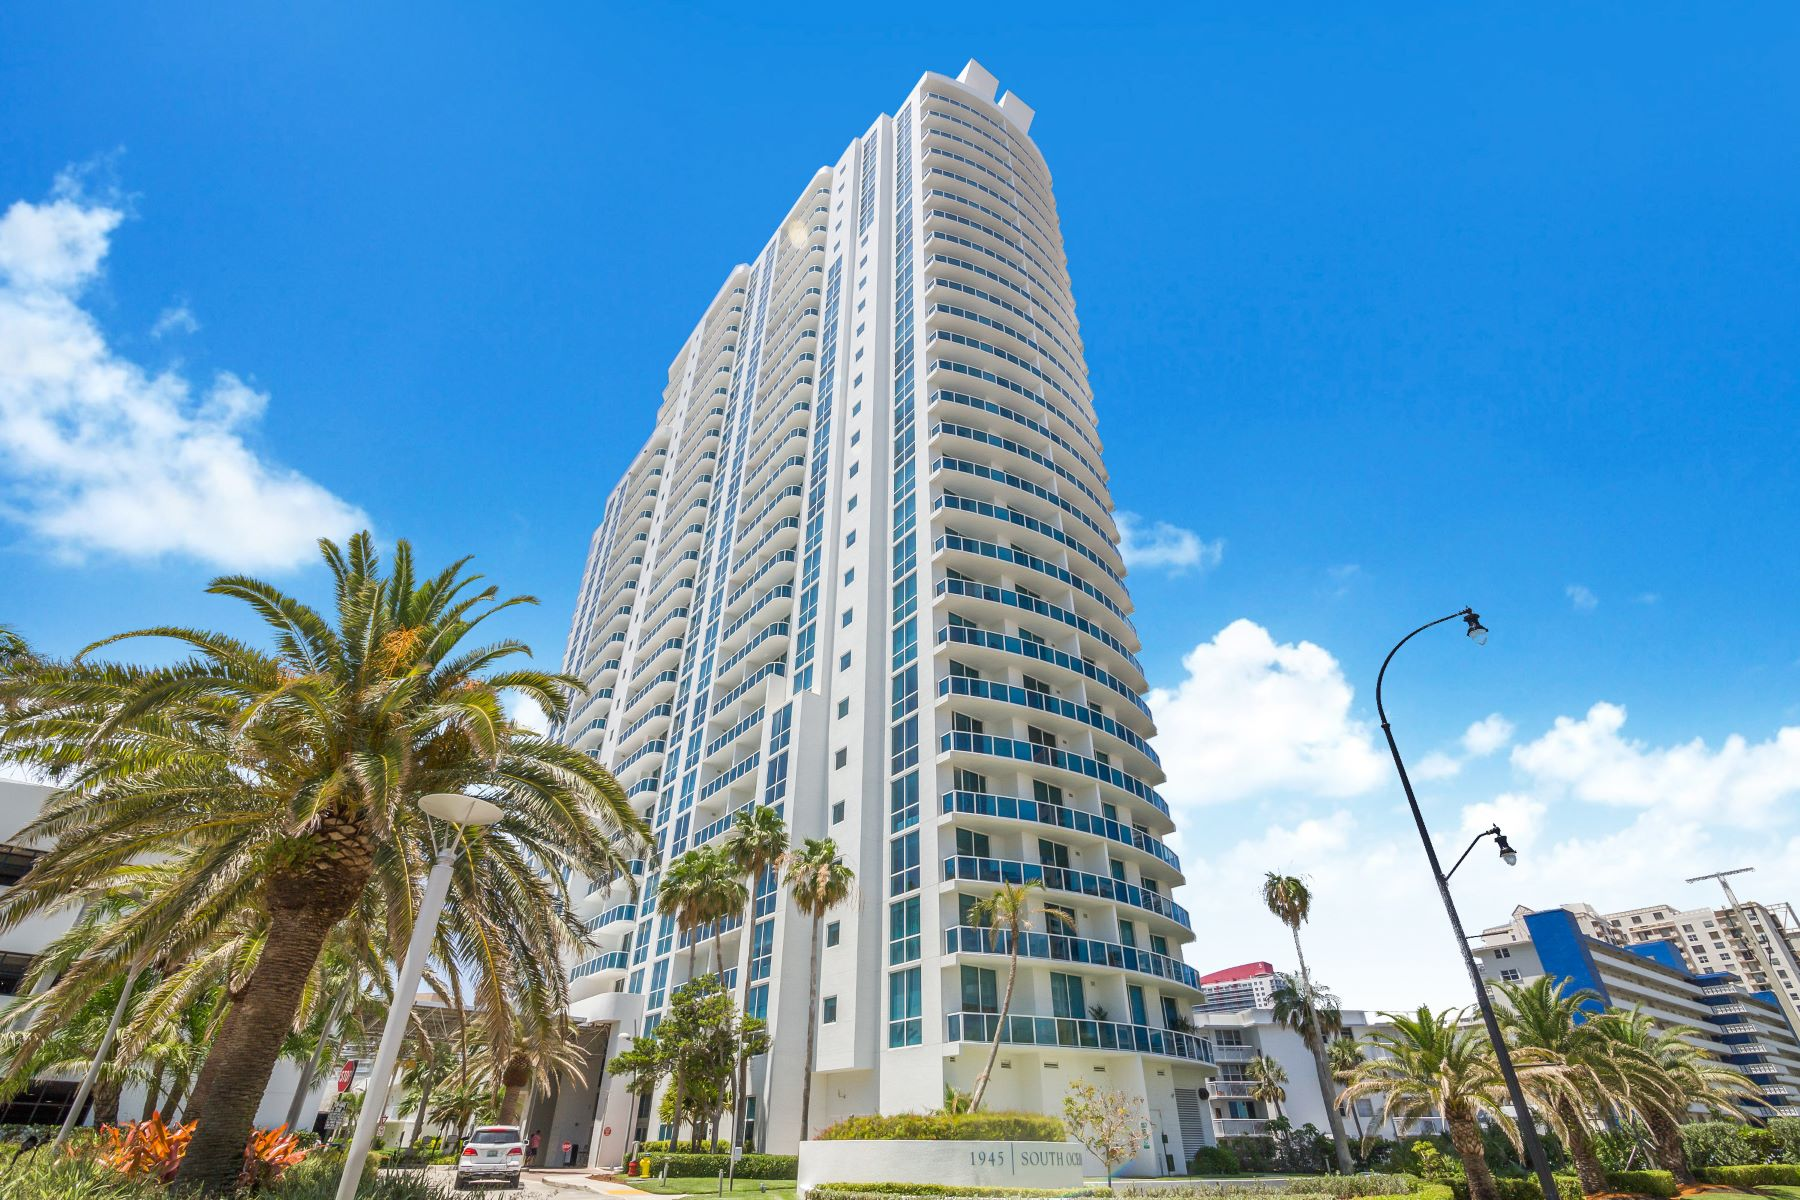 Condominiums for Sale at Beach Property on the Intracoastal Waterways Florida 1945 S Ocean Dr 605, Hallandale, Florida 33009 United States